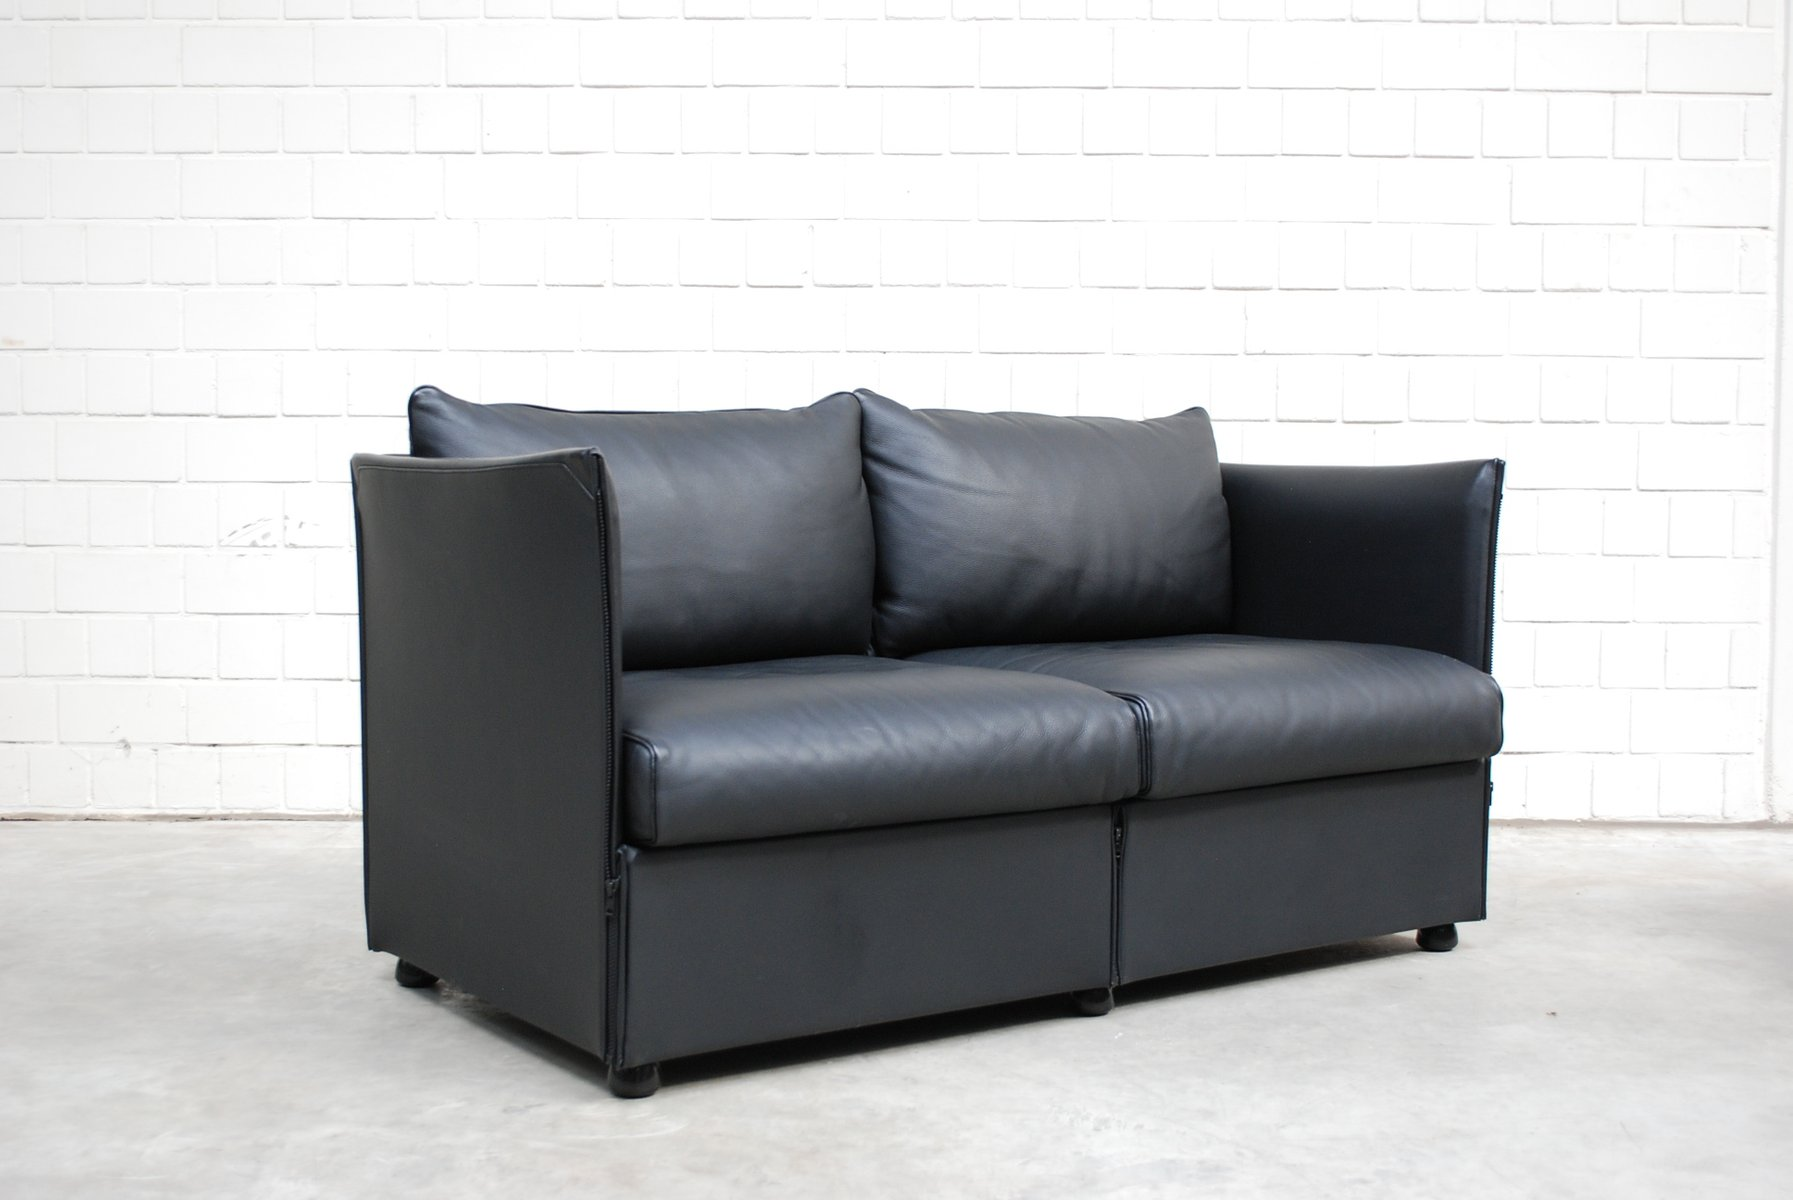 modell landeau ledersofa von mario bellini f r cassina 1976 bei pamono kaufen. Black Bedroom Furniture Sets. Home Design Ideas